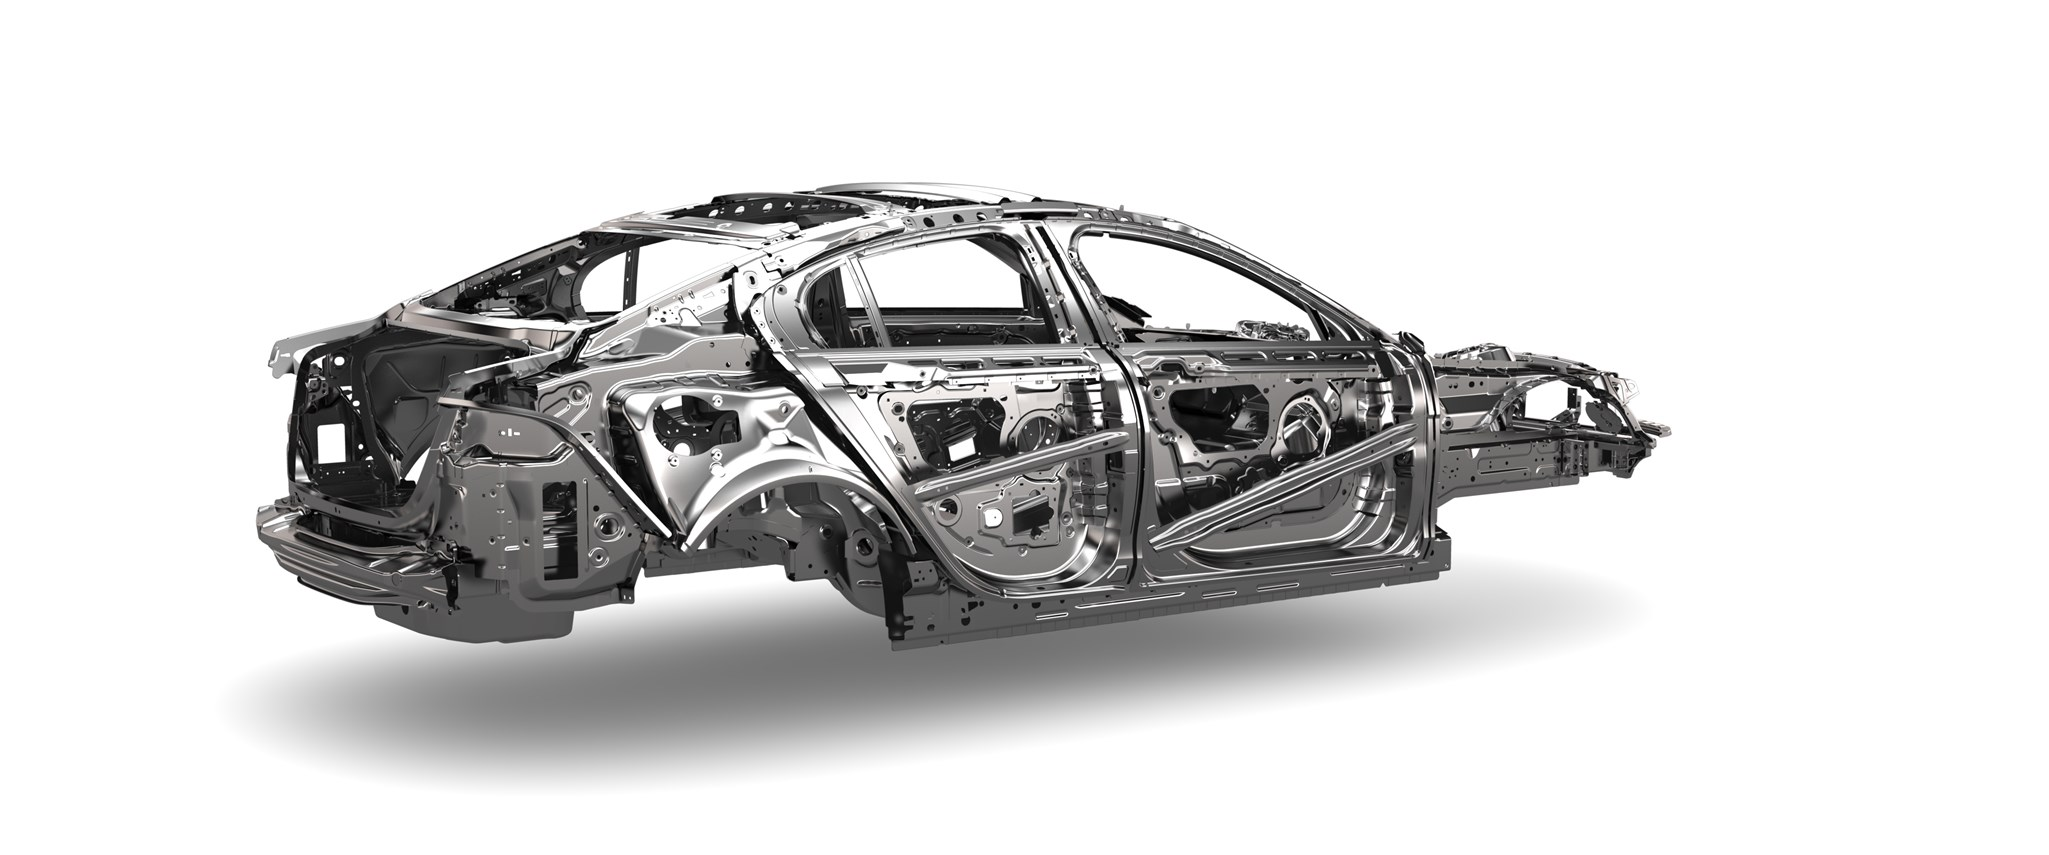 The mostly aluminium innards of the new 2015 Jaguar XE